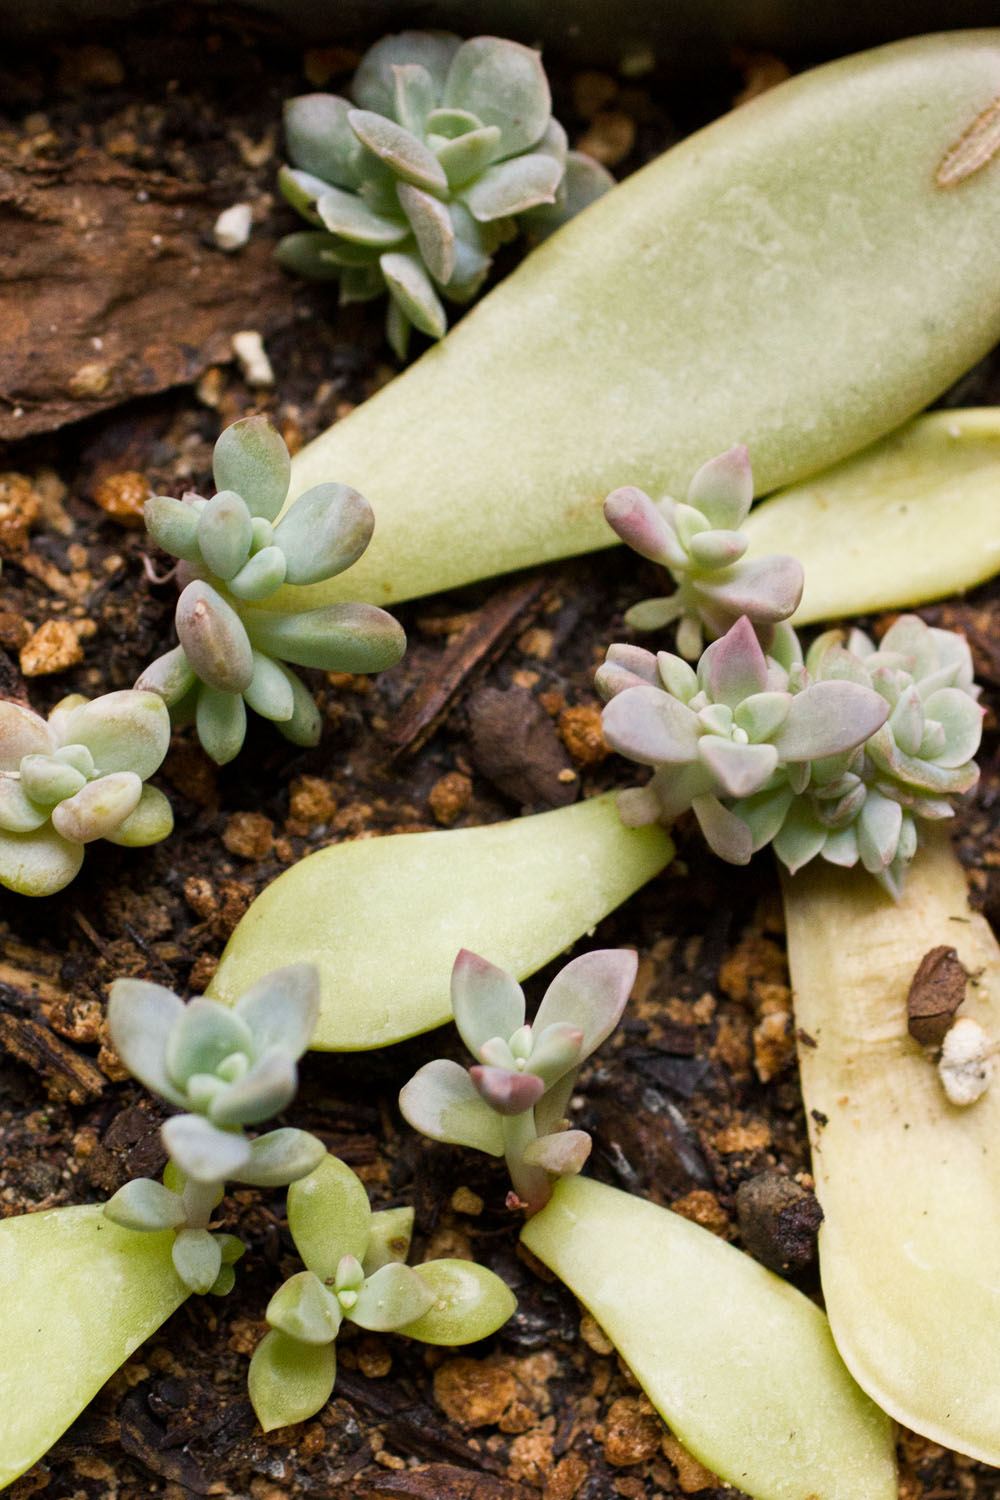 Growth Care And Propagating Succulents And Other Cacti February 2014